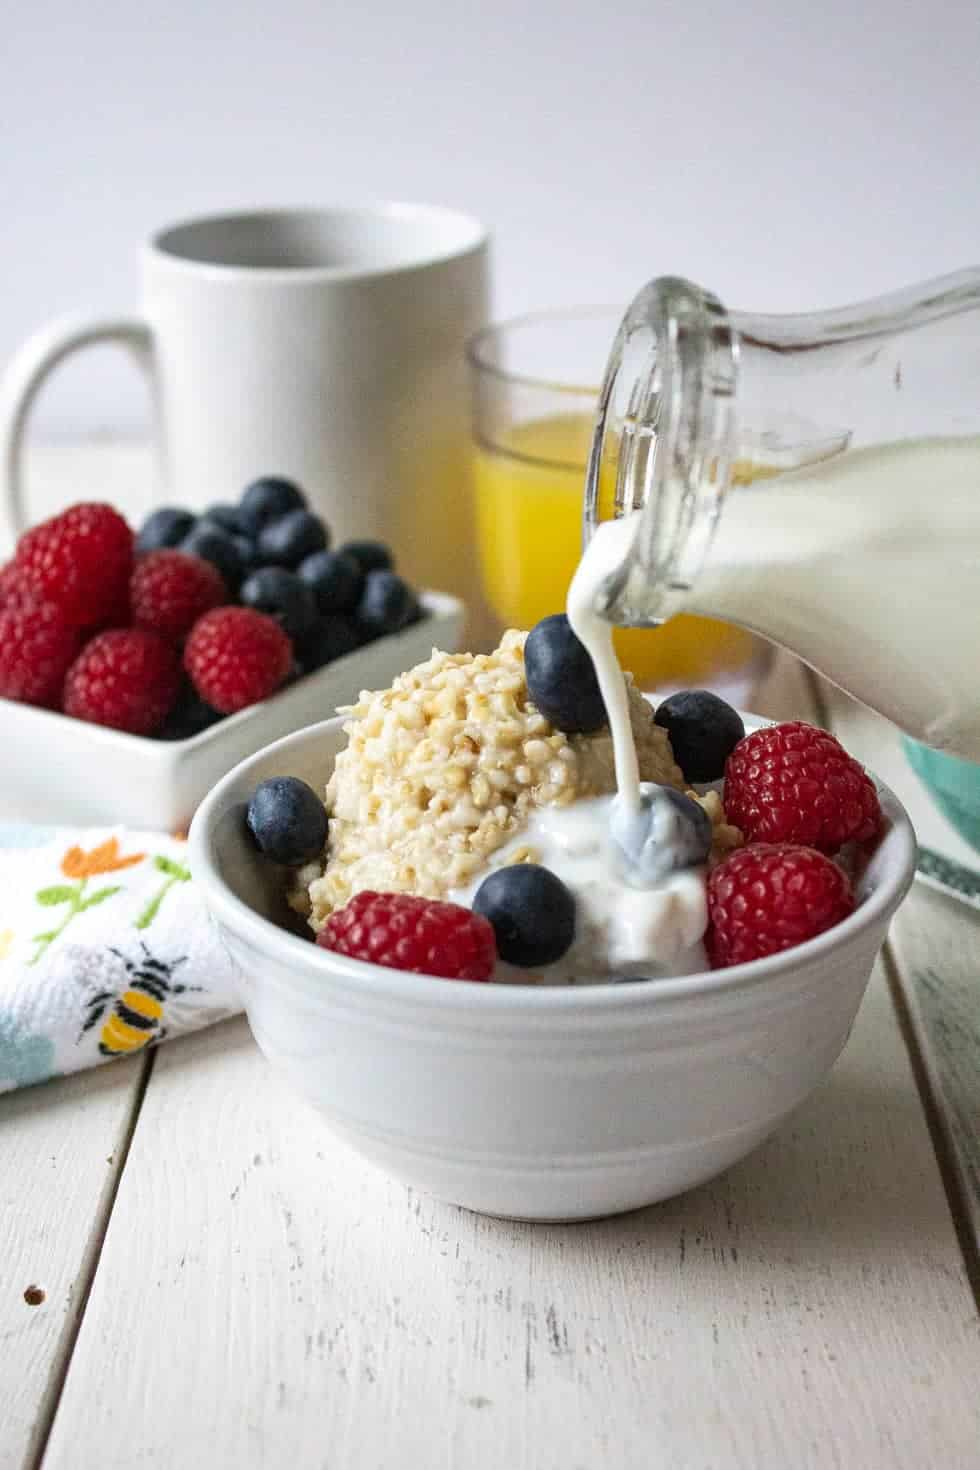 Milk being poured over a bowl full of oatmeal and fruit.